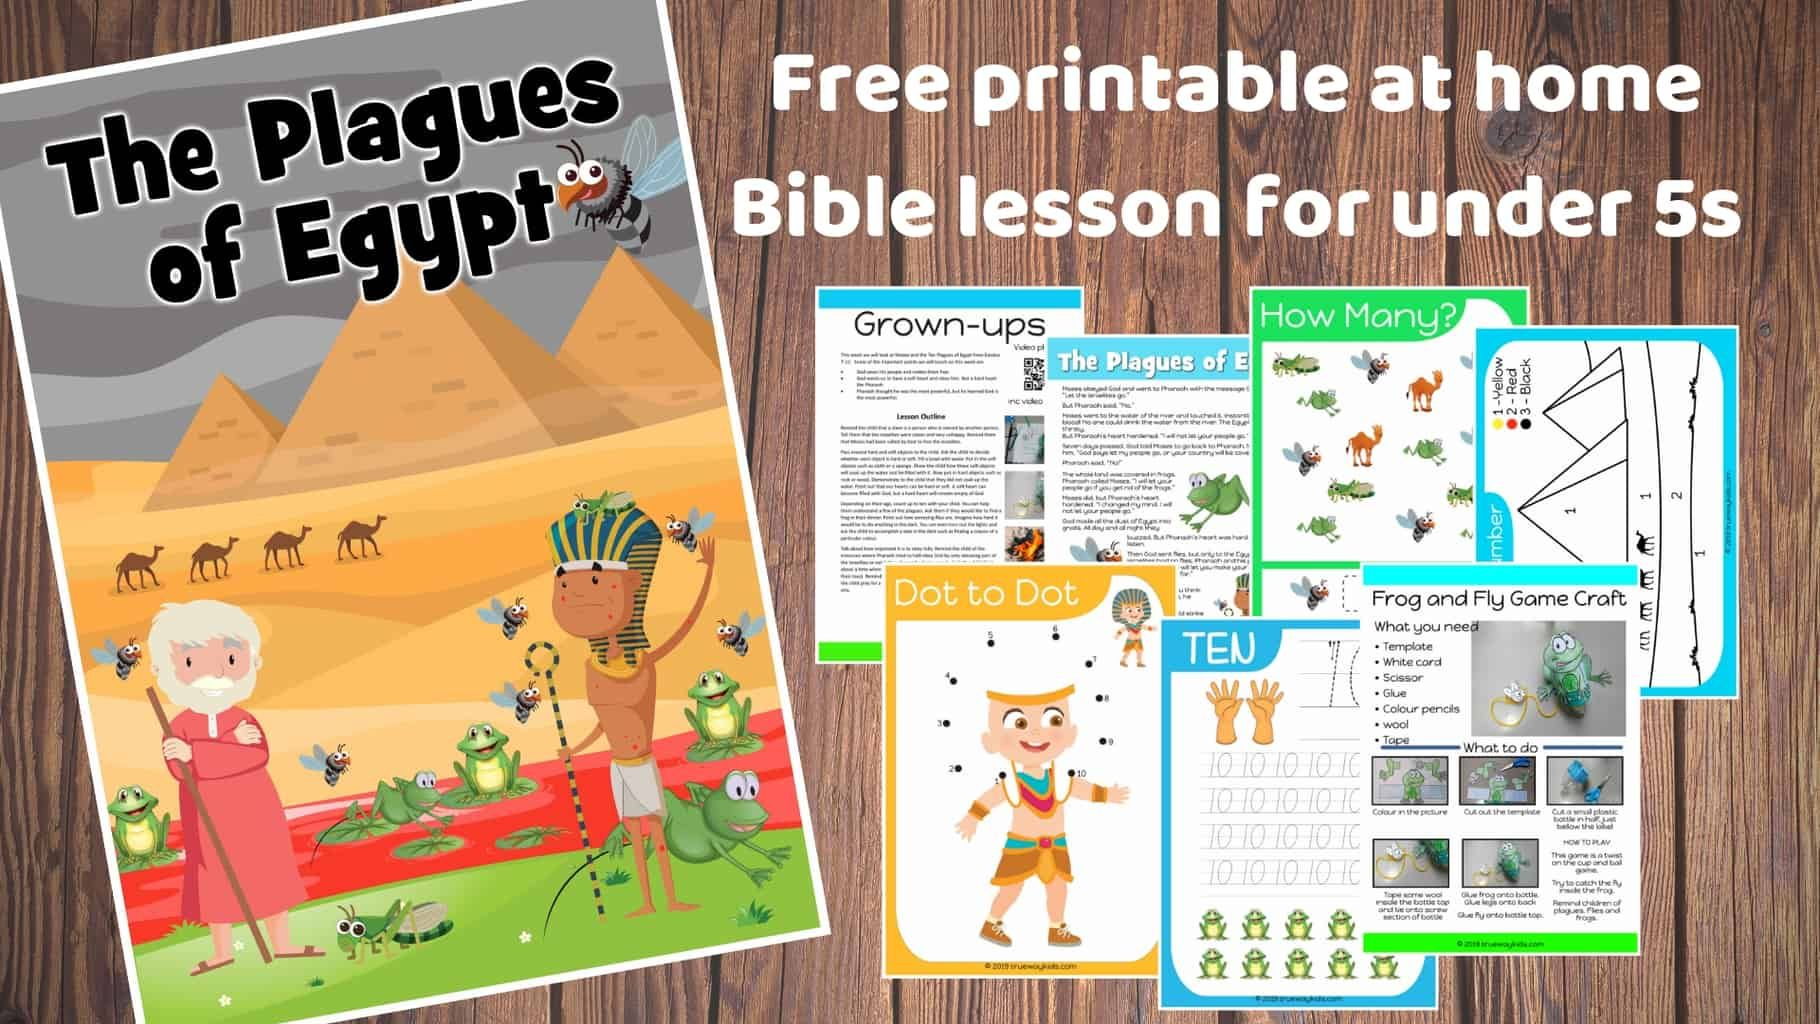 Moses And The Plagues Of Egypt Preschool Bible Lesson